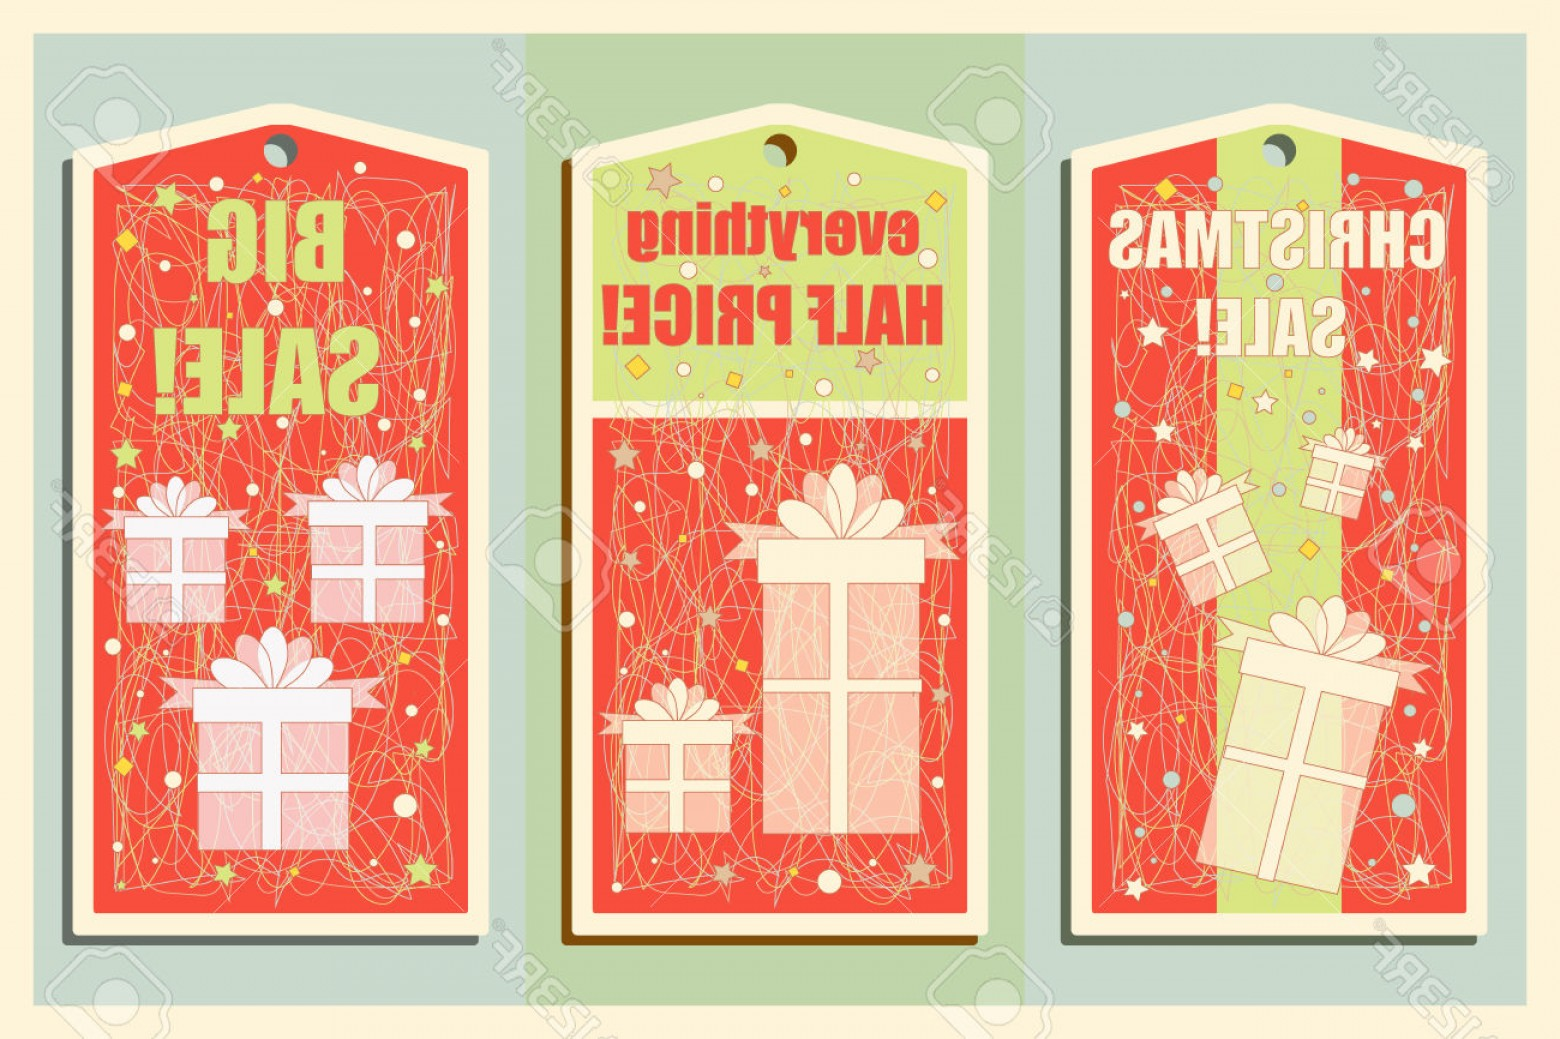 Vintage Xmas Sale Tag Vector: Vintage Christmas And Happy New Year Holiday Set Of Sale Tags Christmas Sale Design And Banners Vector Illustration